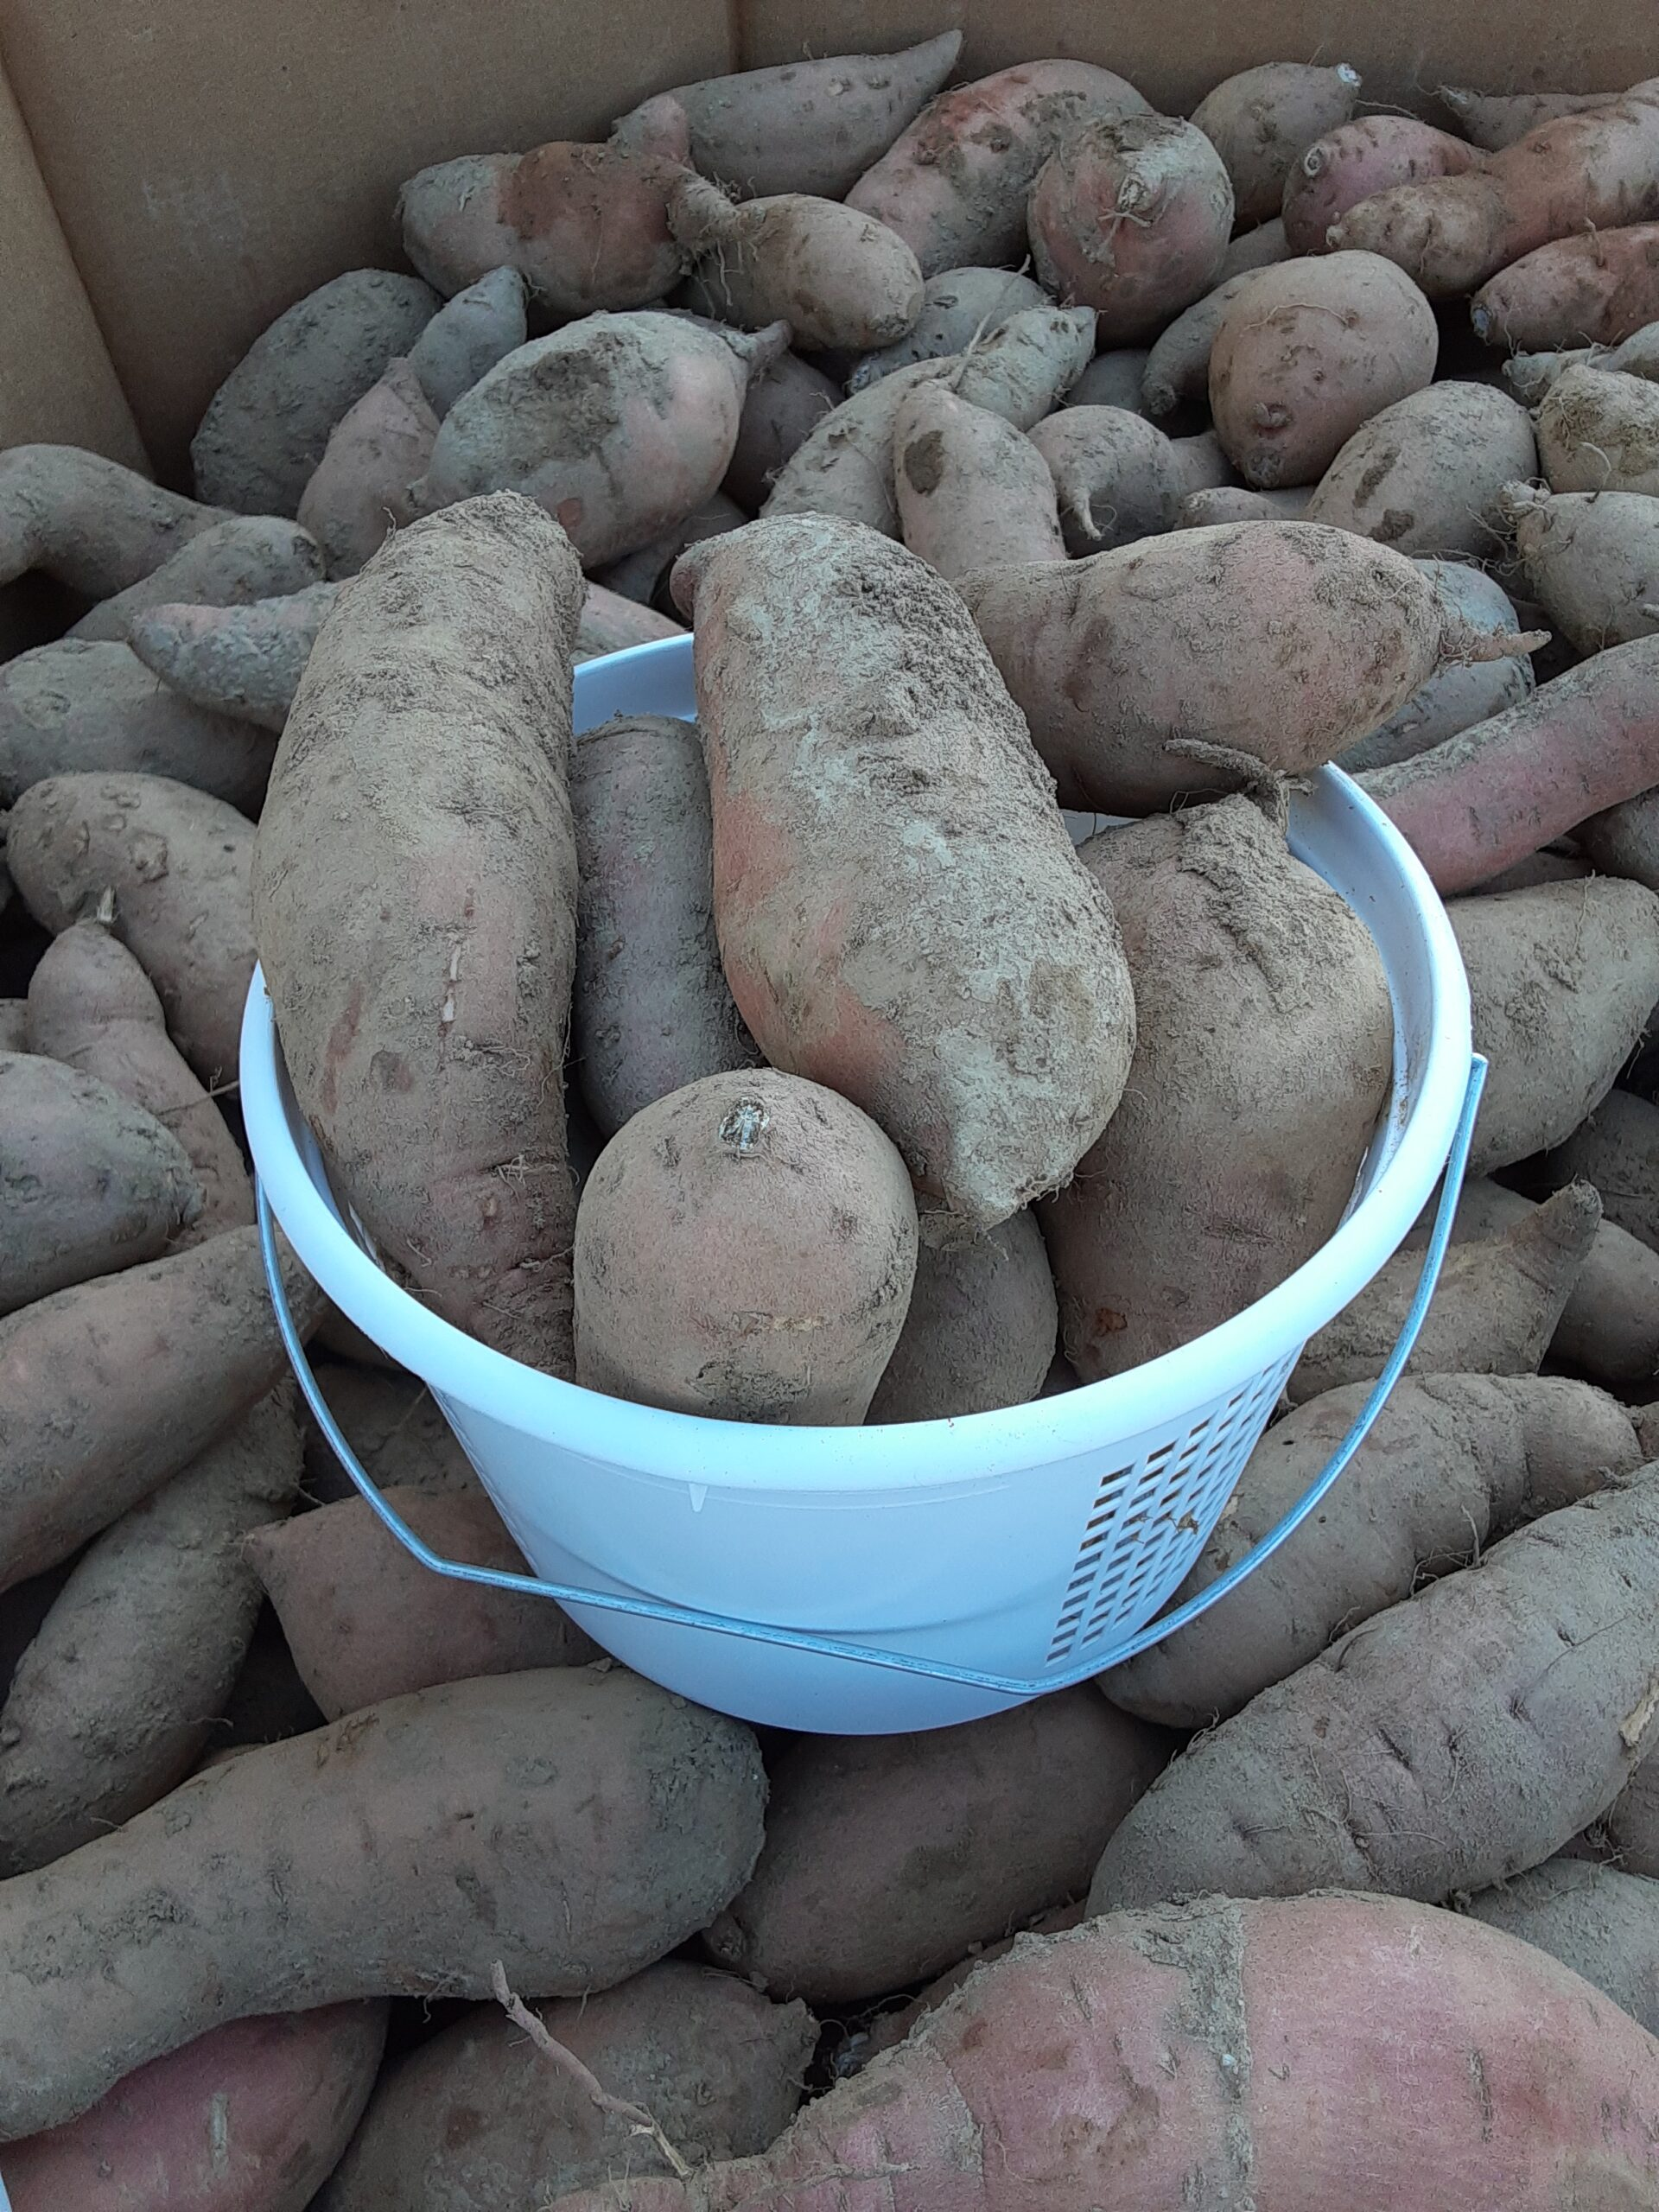 Sweet Potatoes from our friends at Lois's Produce in Westmoreland County.